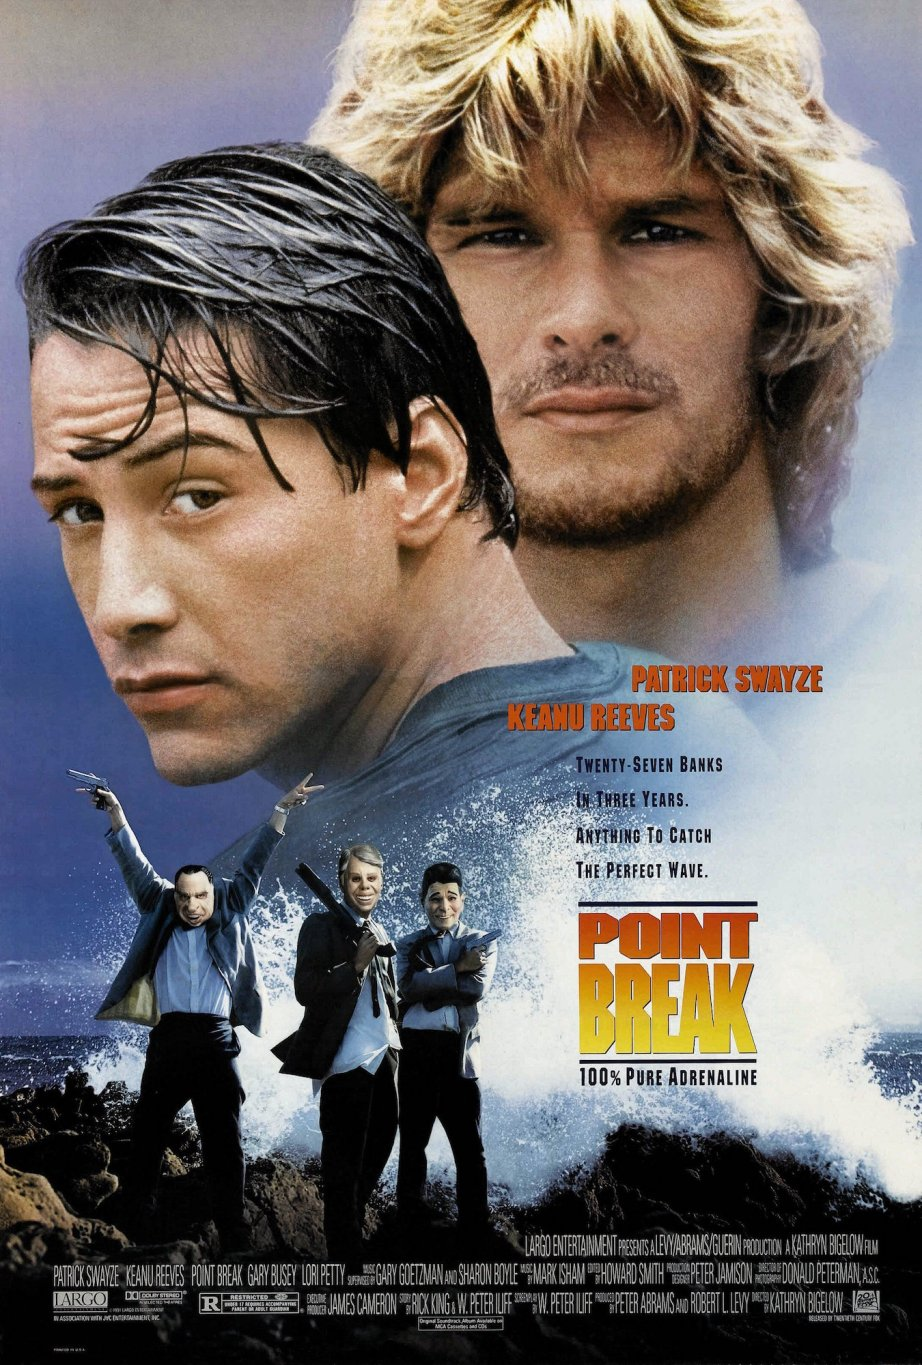 """You want me so bad, its like acid in your mouth."" Keanu Reeves & Patrick Swayze POINT BREAK Kathryn Bigelow, 1991"